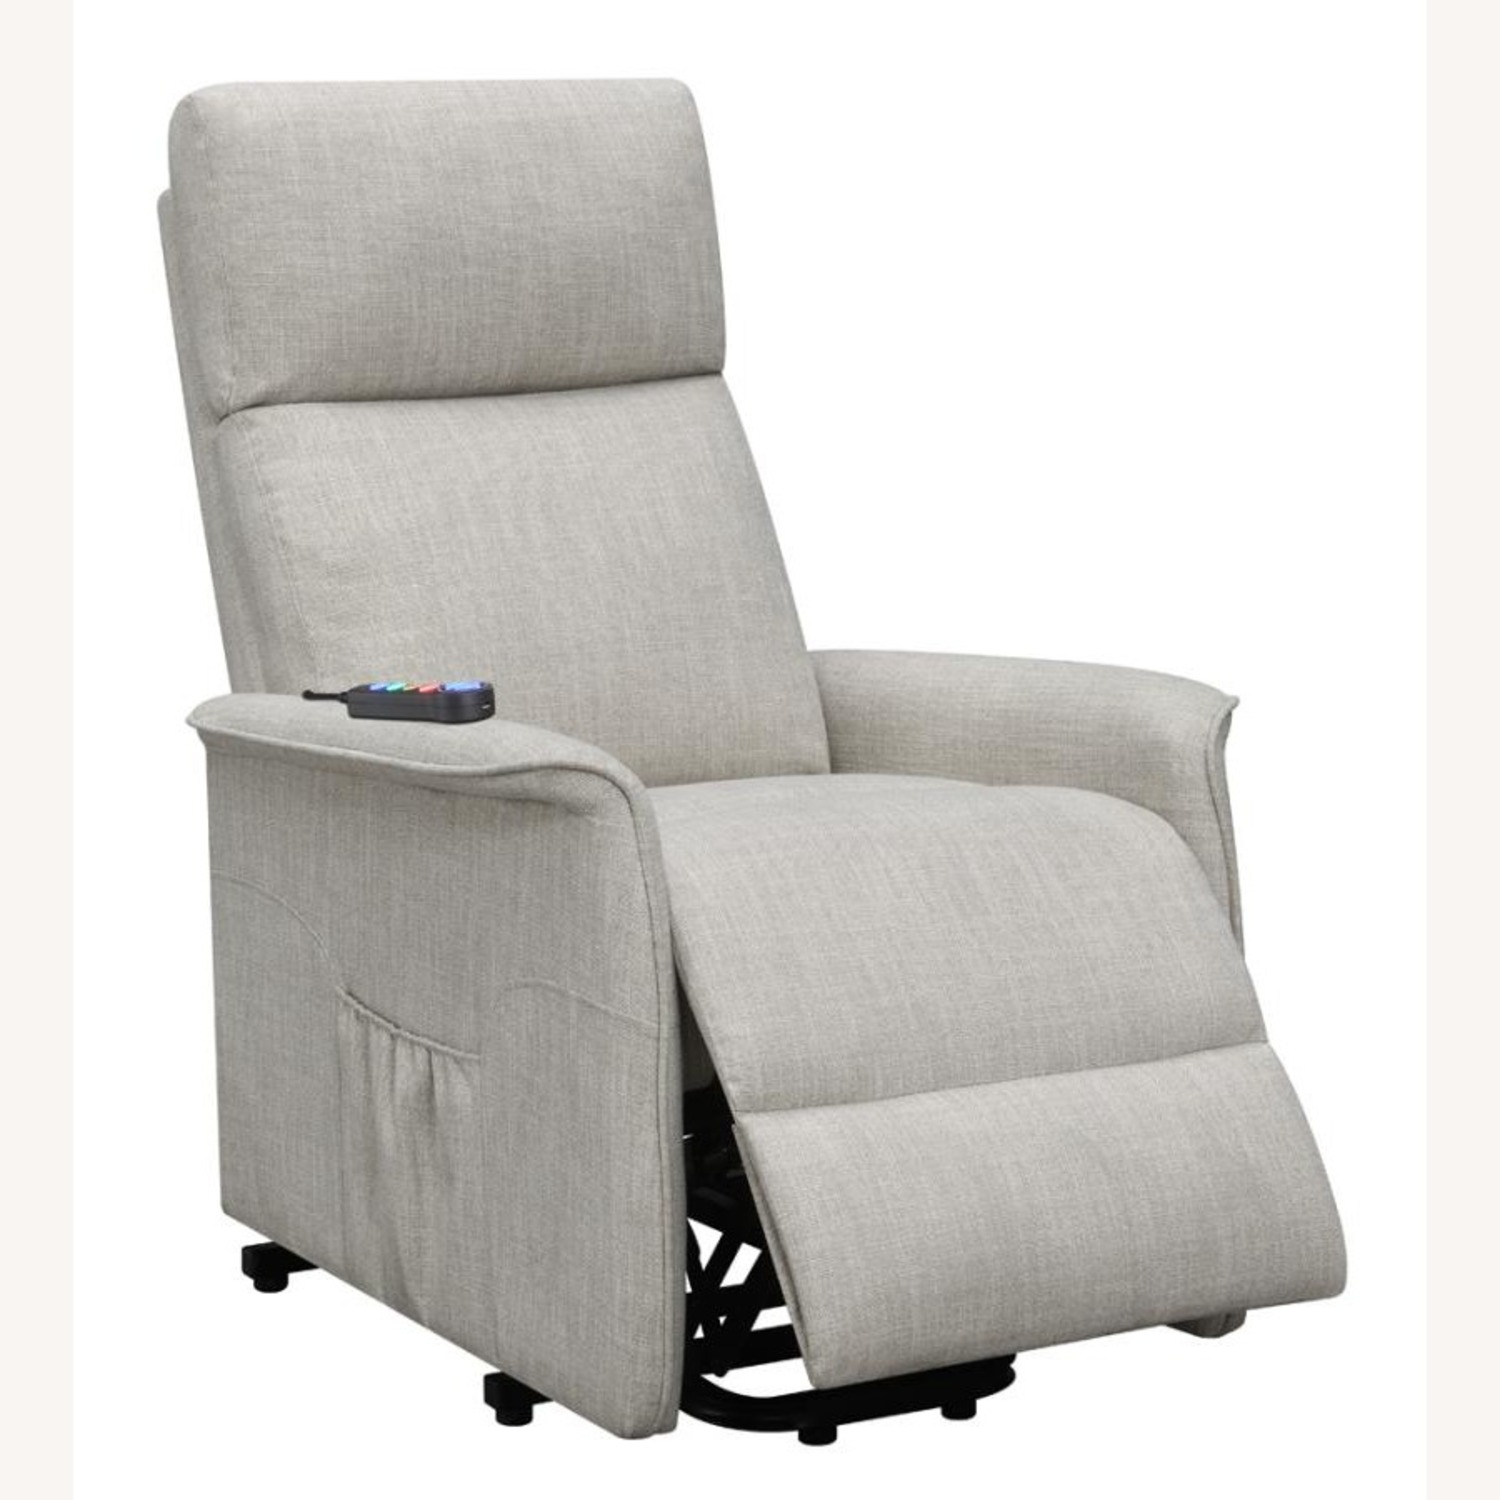 Power Lift Recliner Tufted In Beige Fabric - image-1